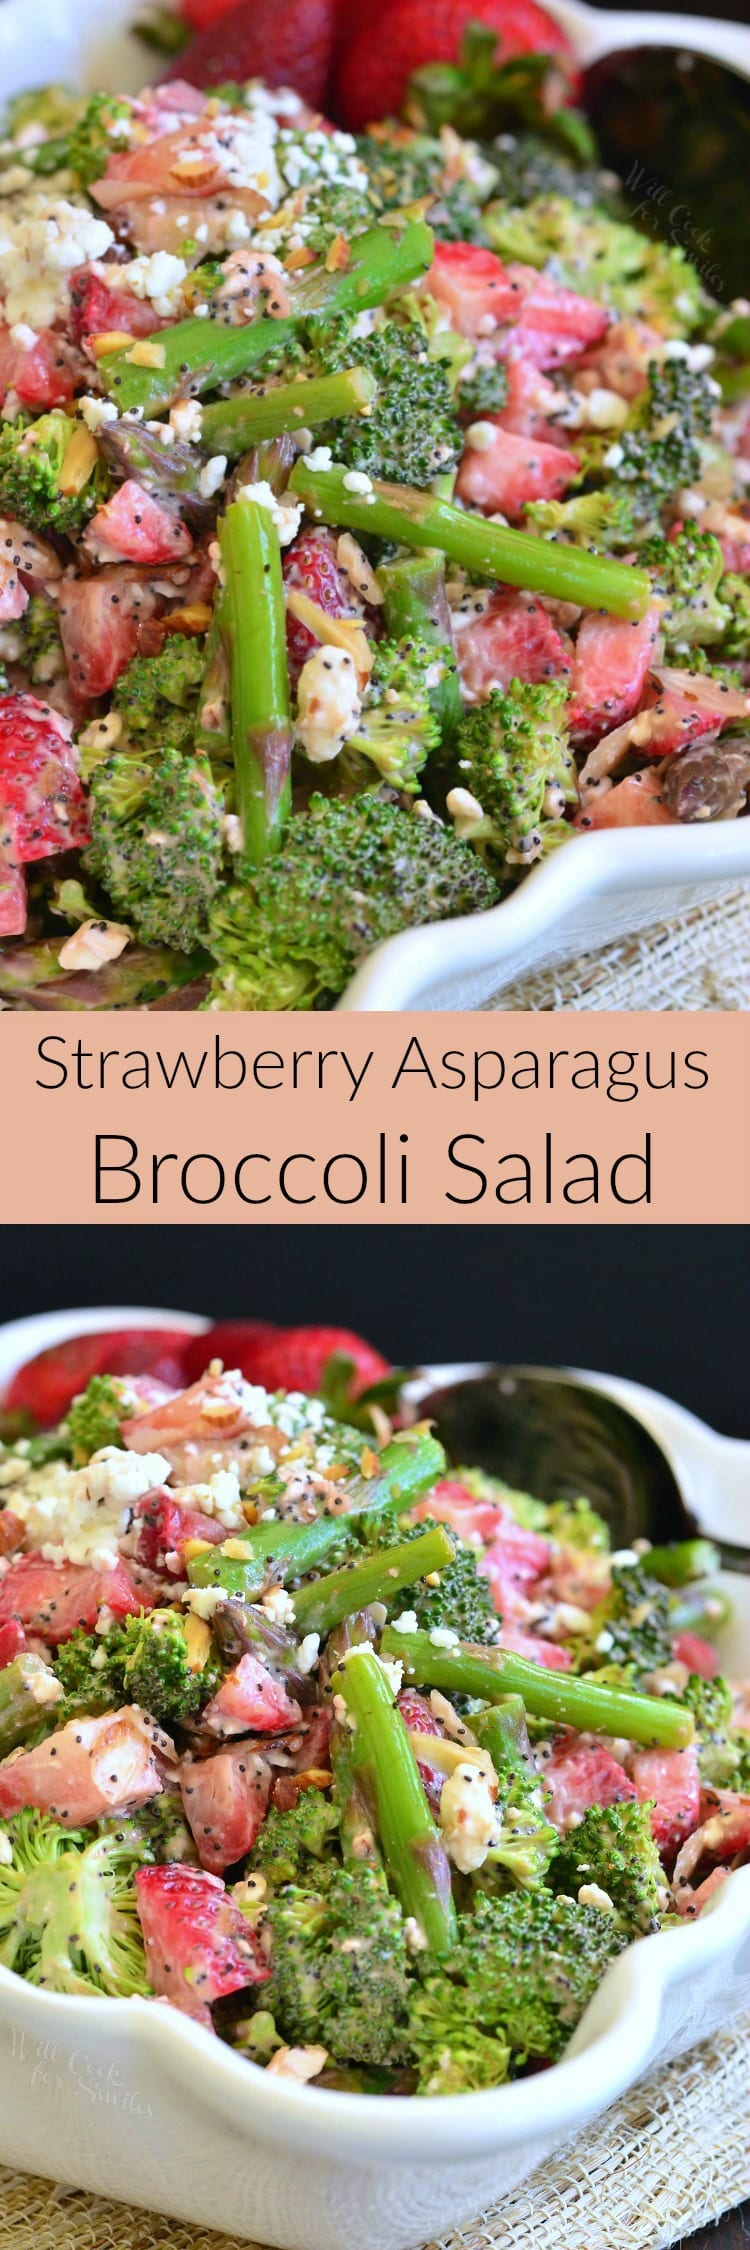 photo collage top photo top view of Strawberry Asparagus Broccoli Salad bottom photo salad in white bowl